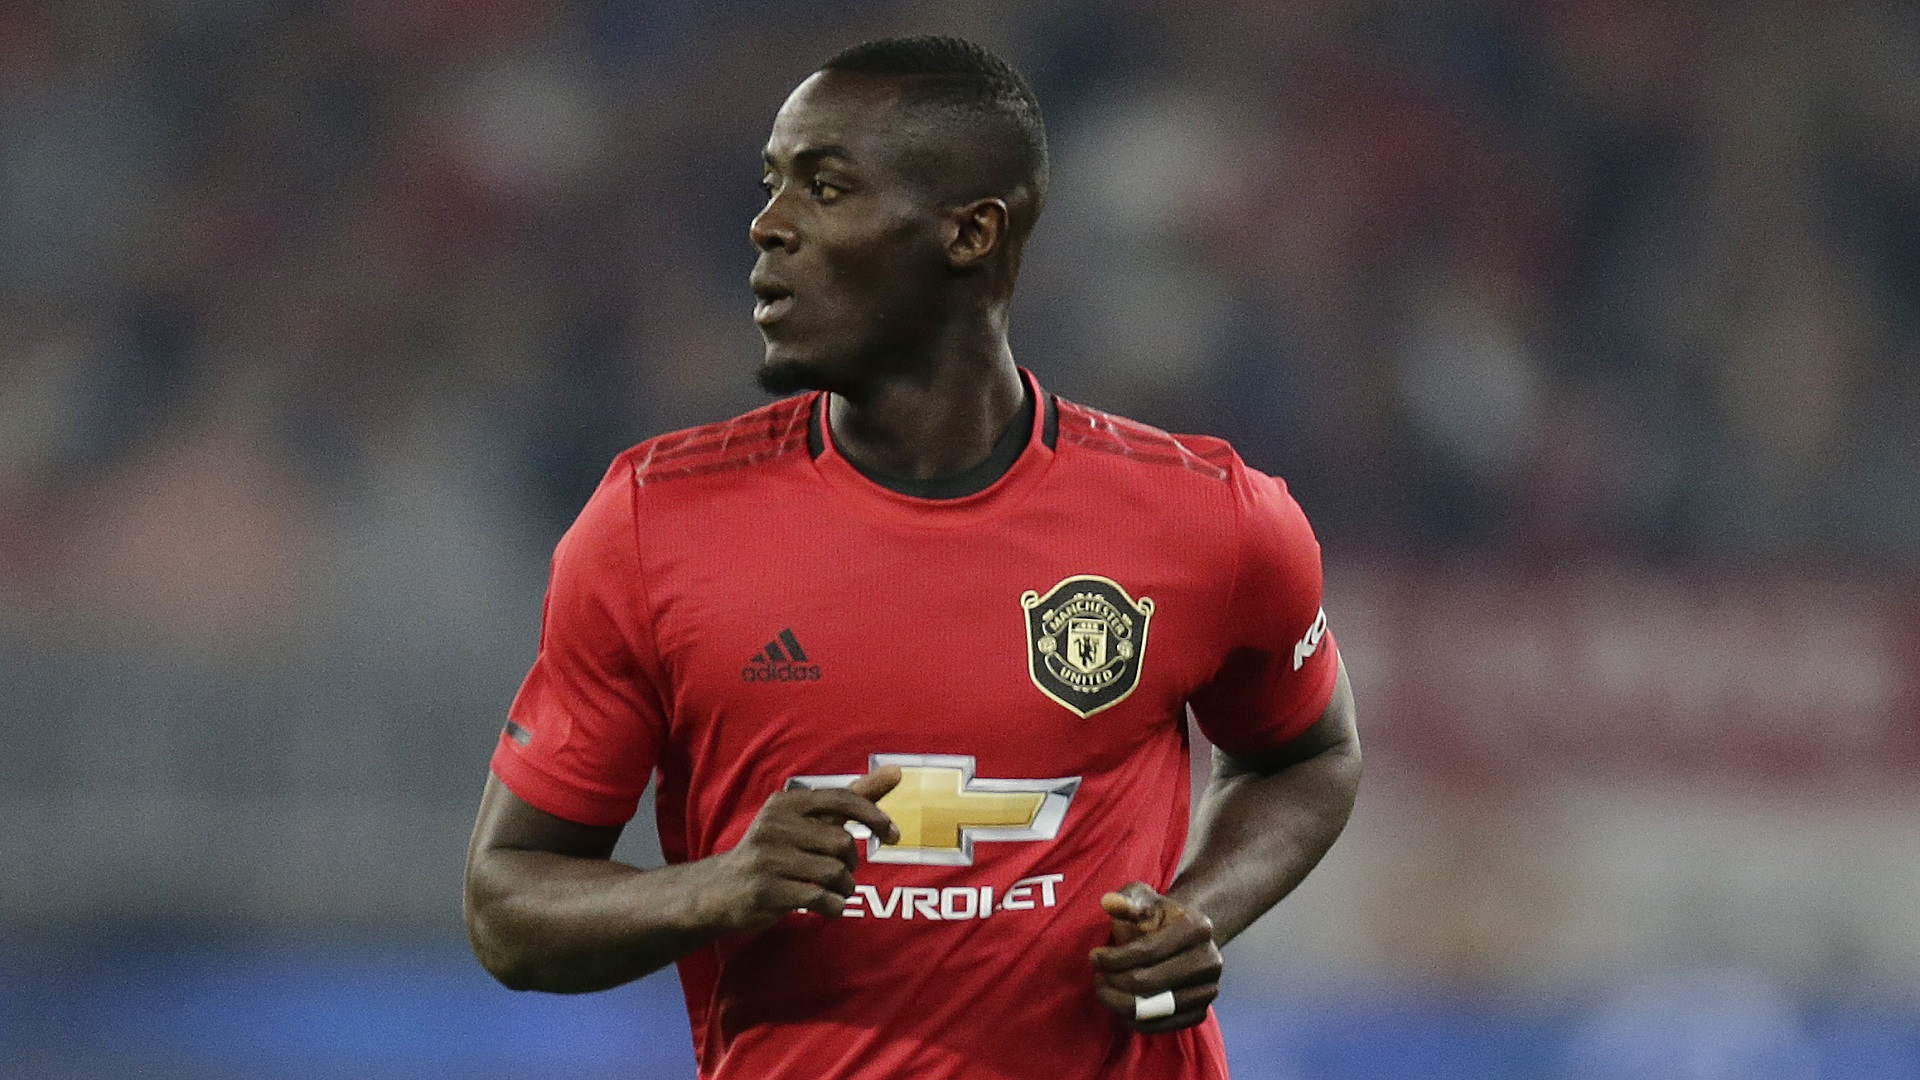 Coronavirus: 'Let's stay at home to beat the virus' - Manchester United's Bailly